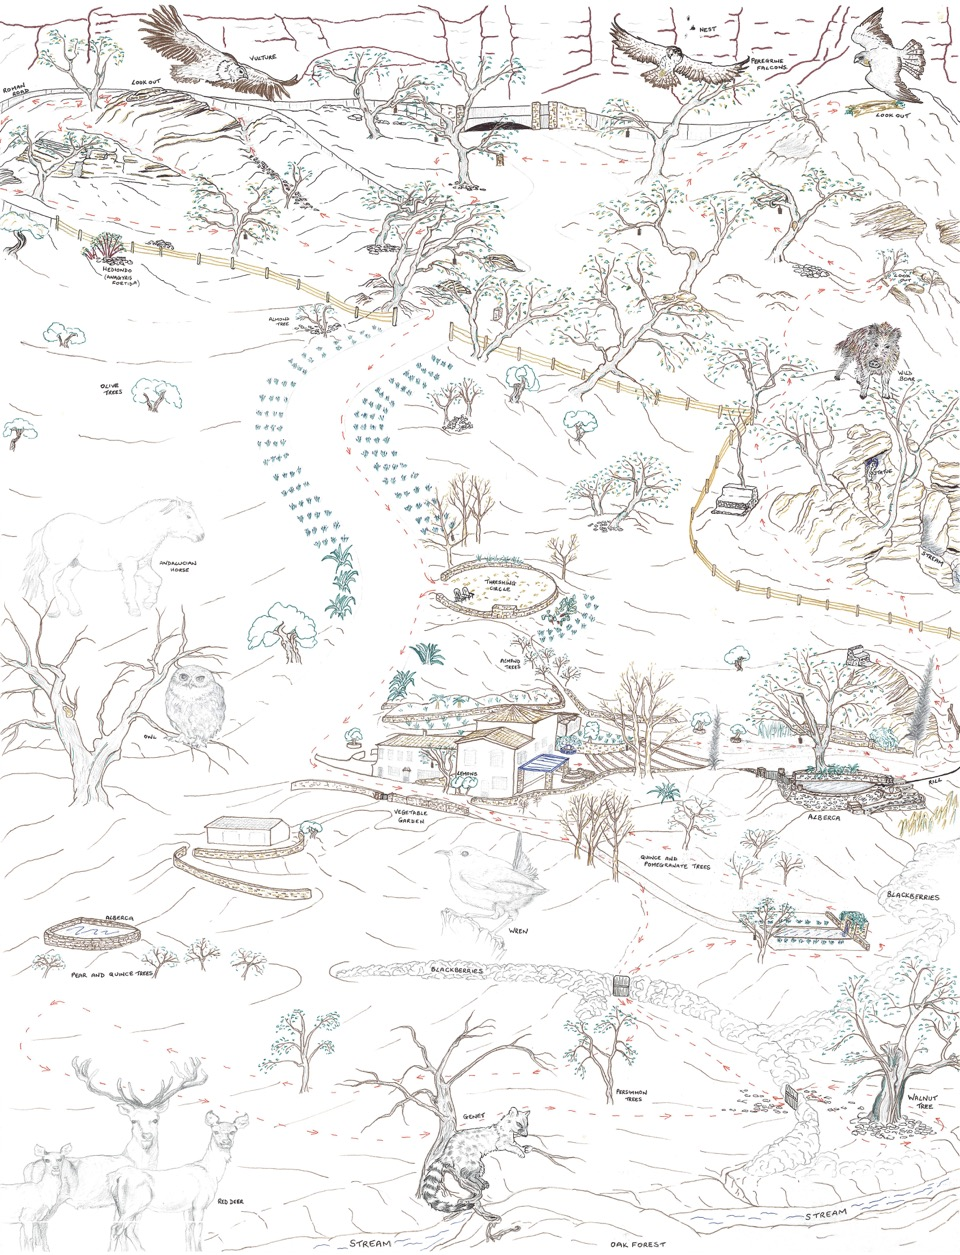 nature_and_wildlife_map_at_luxury_villa_ronda_andalusia_spain